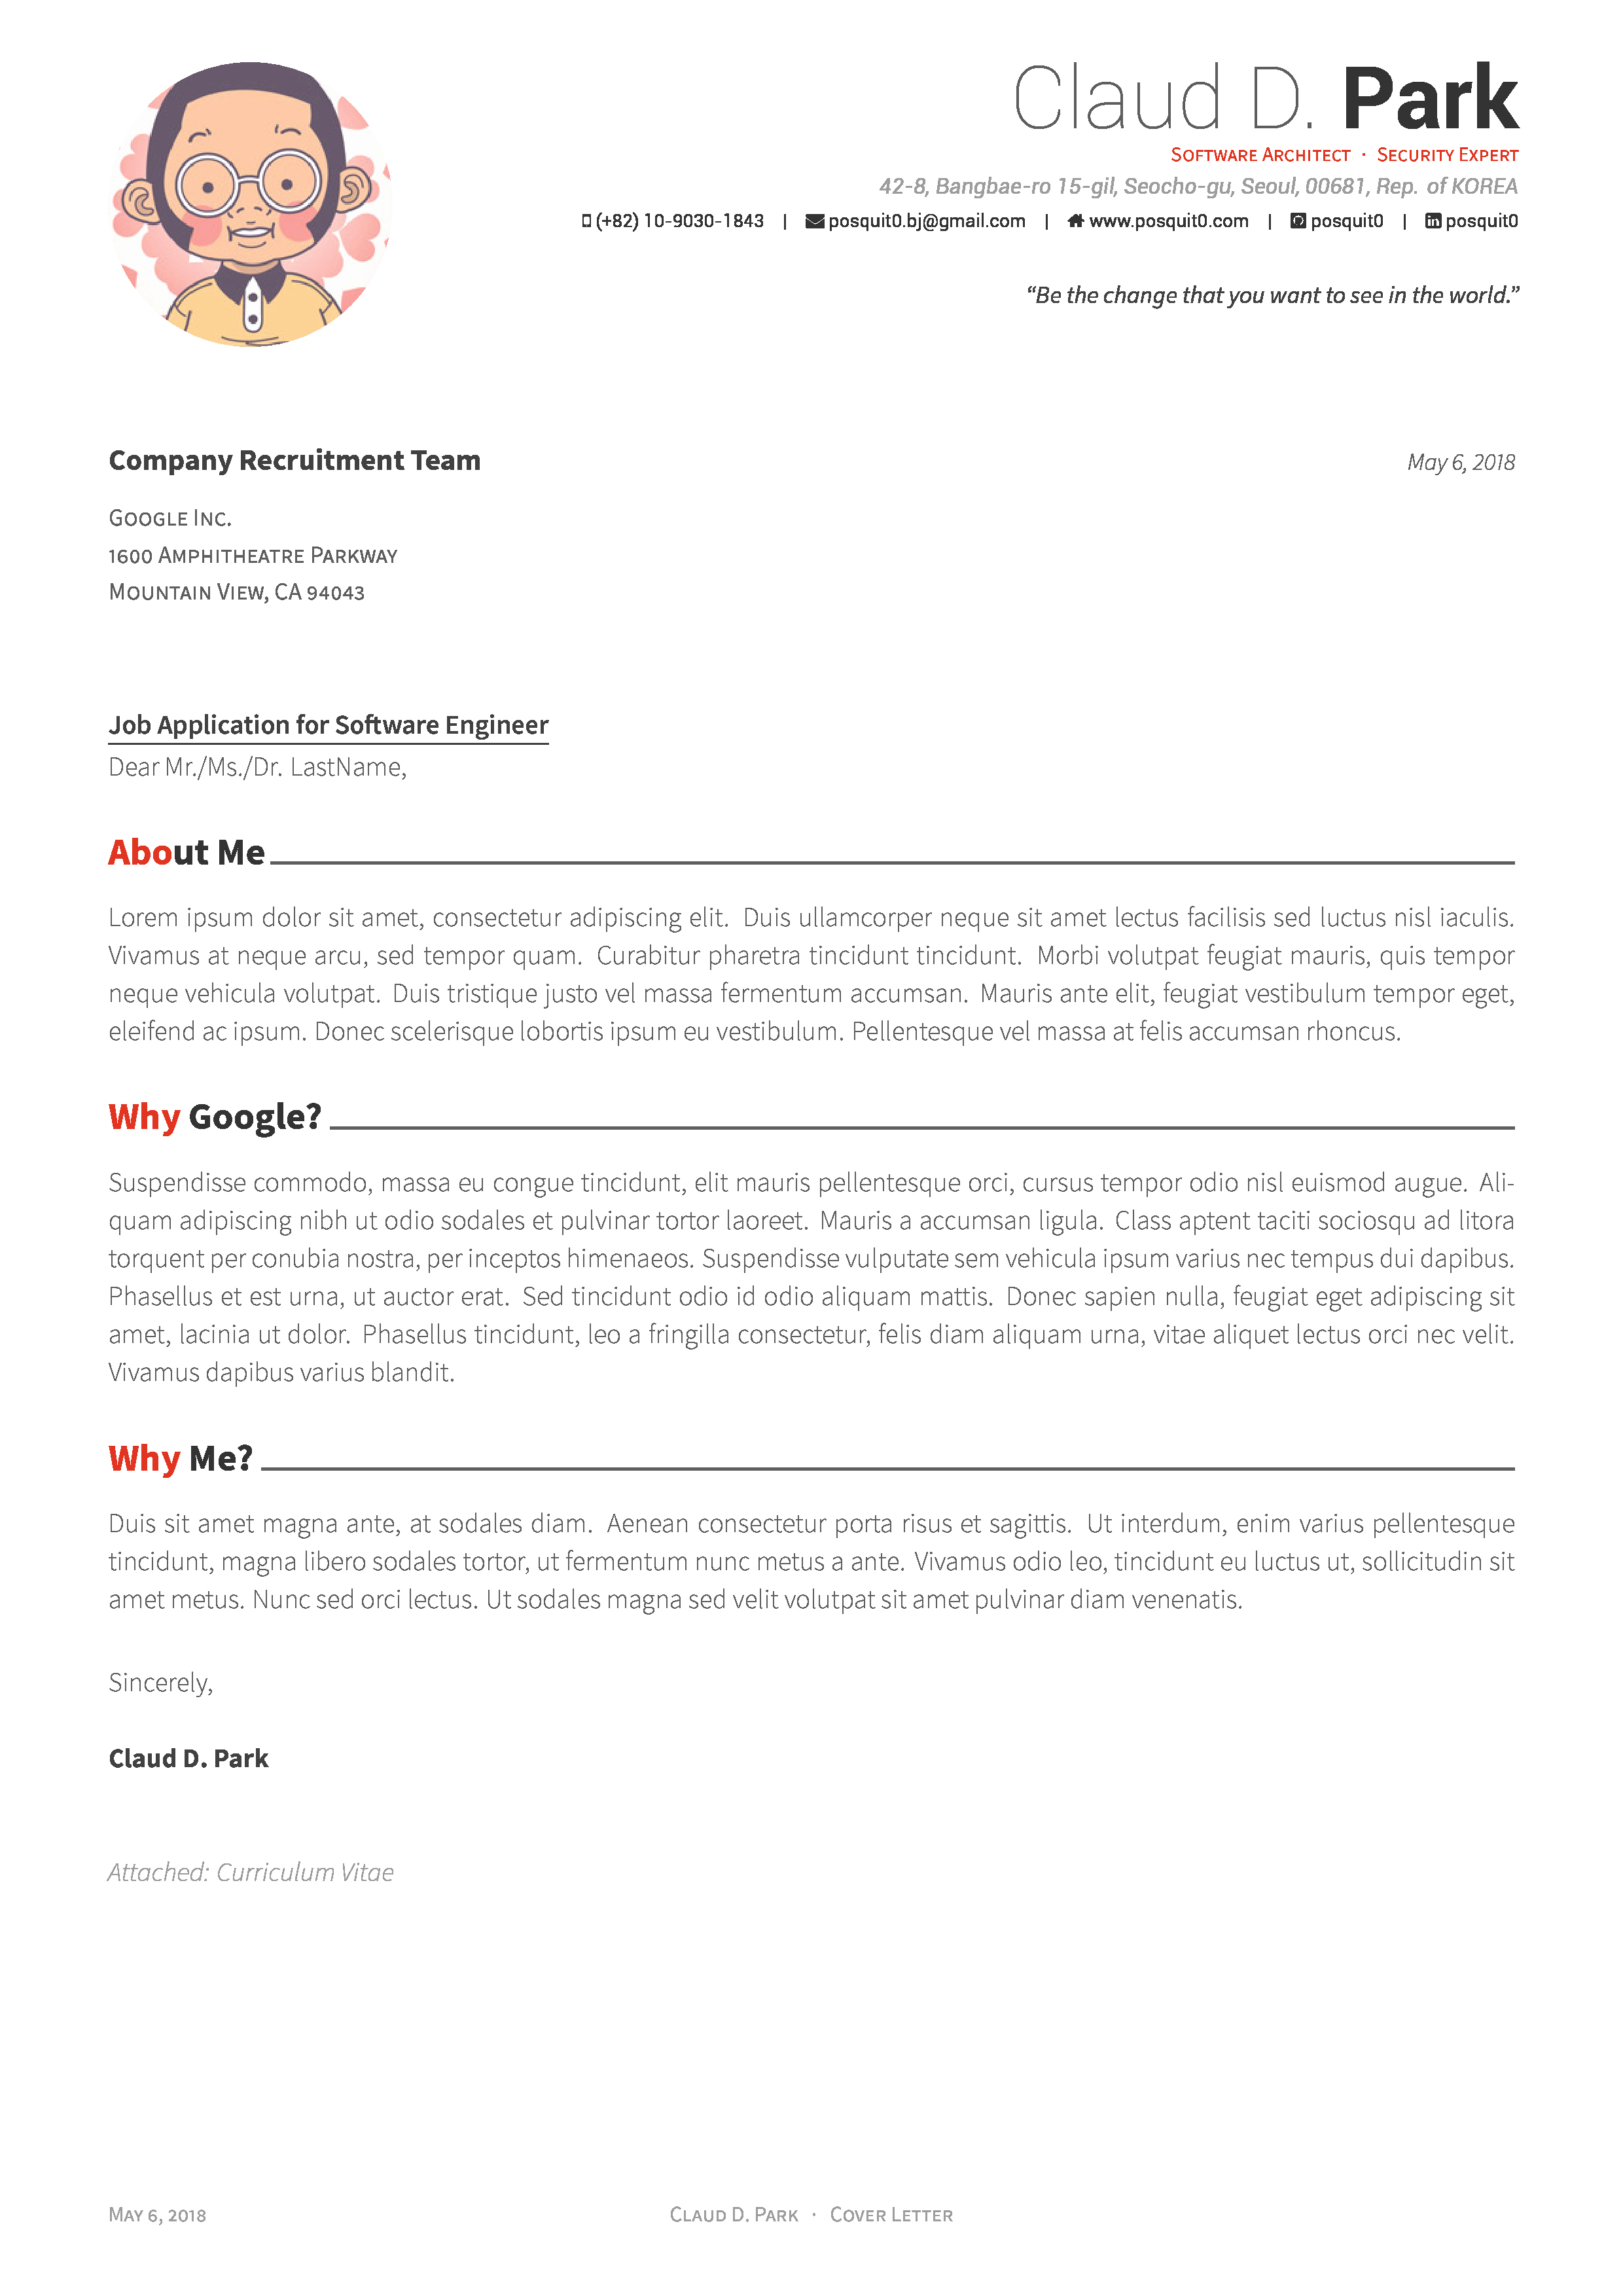 Cover Letter Latex Template Beautiful Github Posquit0 Awesome Cv Awesome Cv is Latex Template